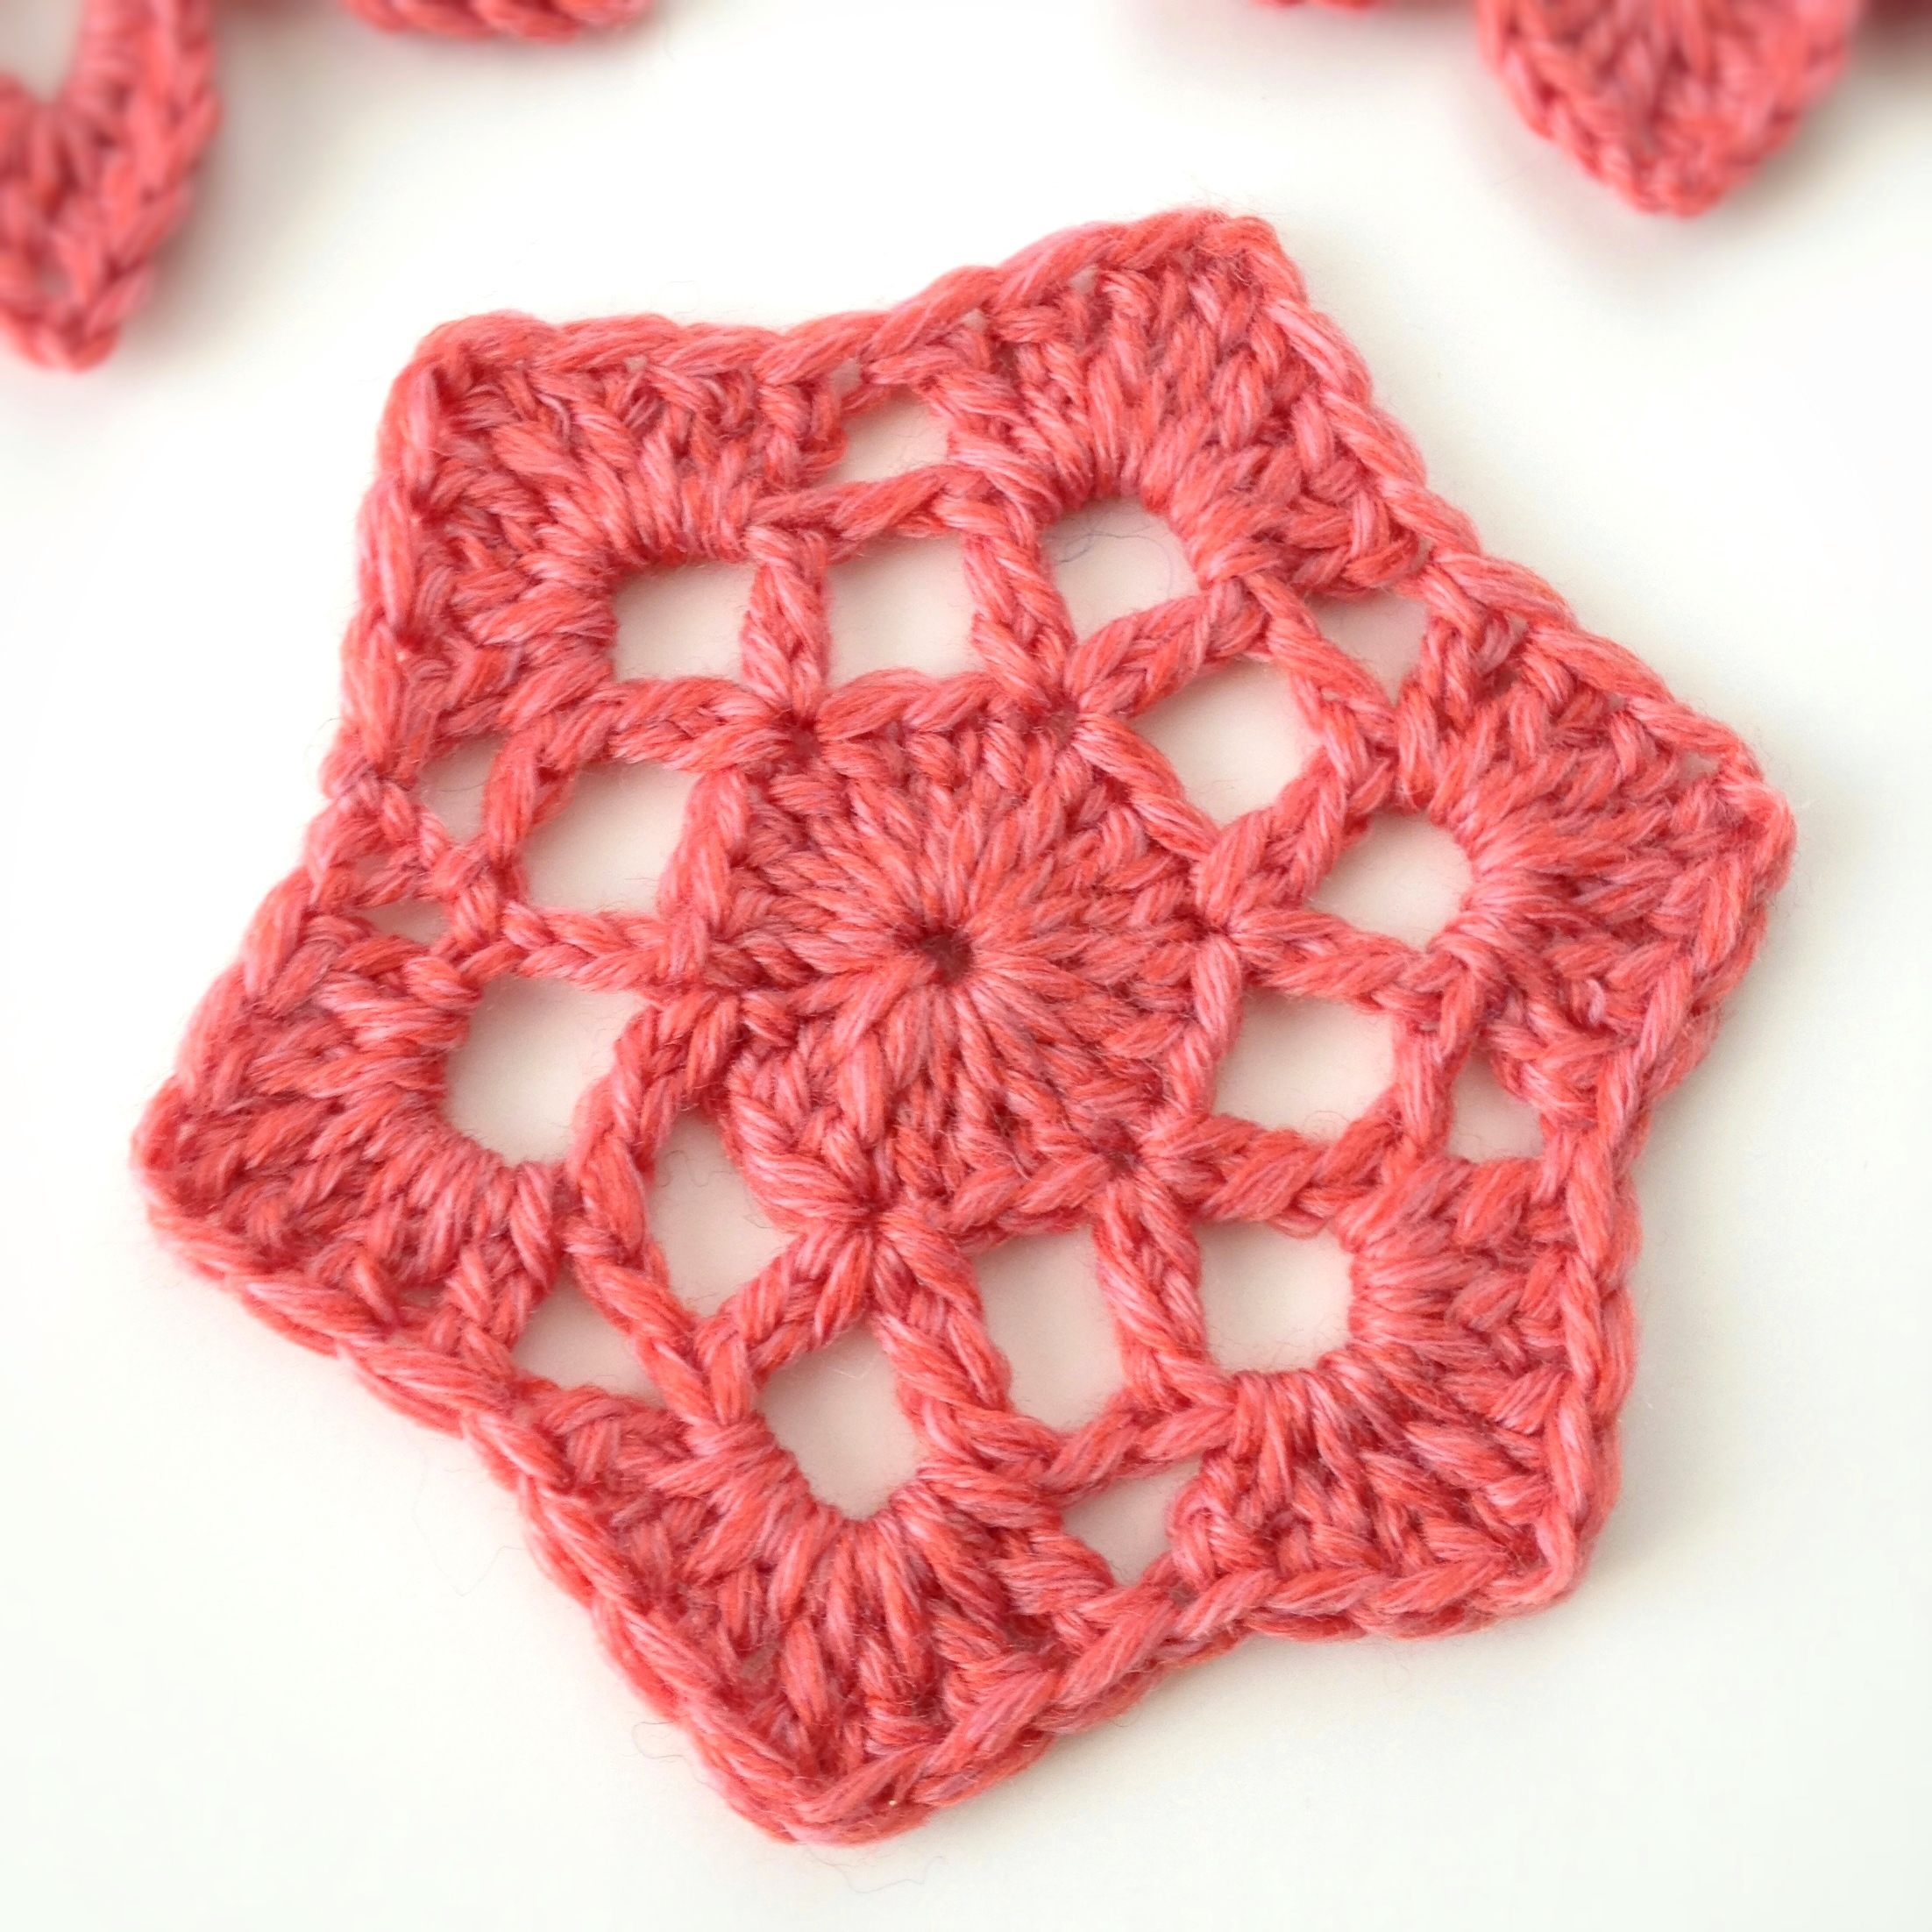 How To Crochet : Crochet motif #53 from ?Beyond the Square Crochet Motifs?